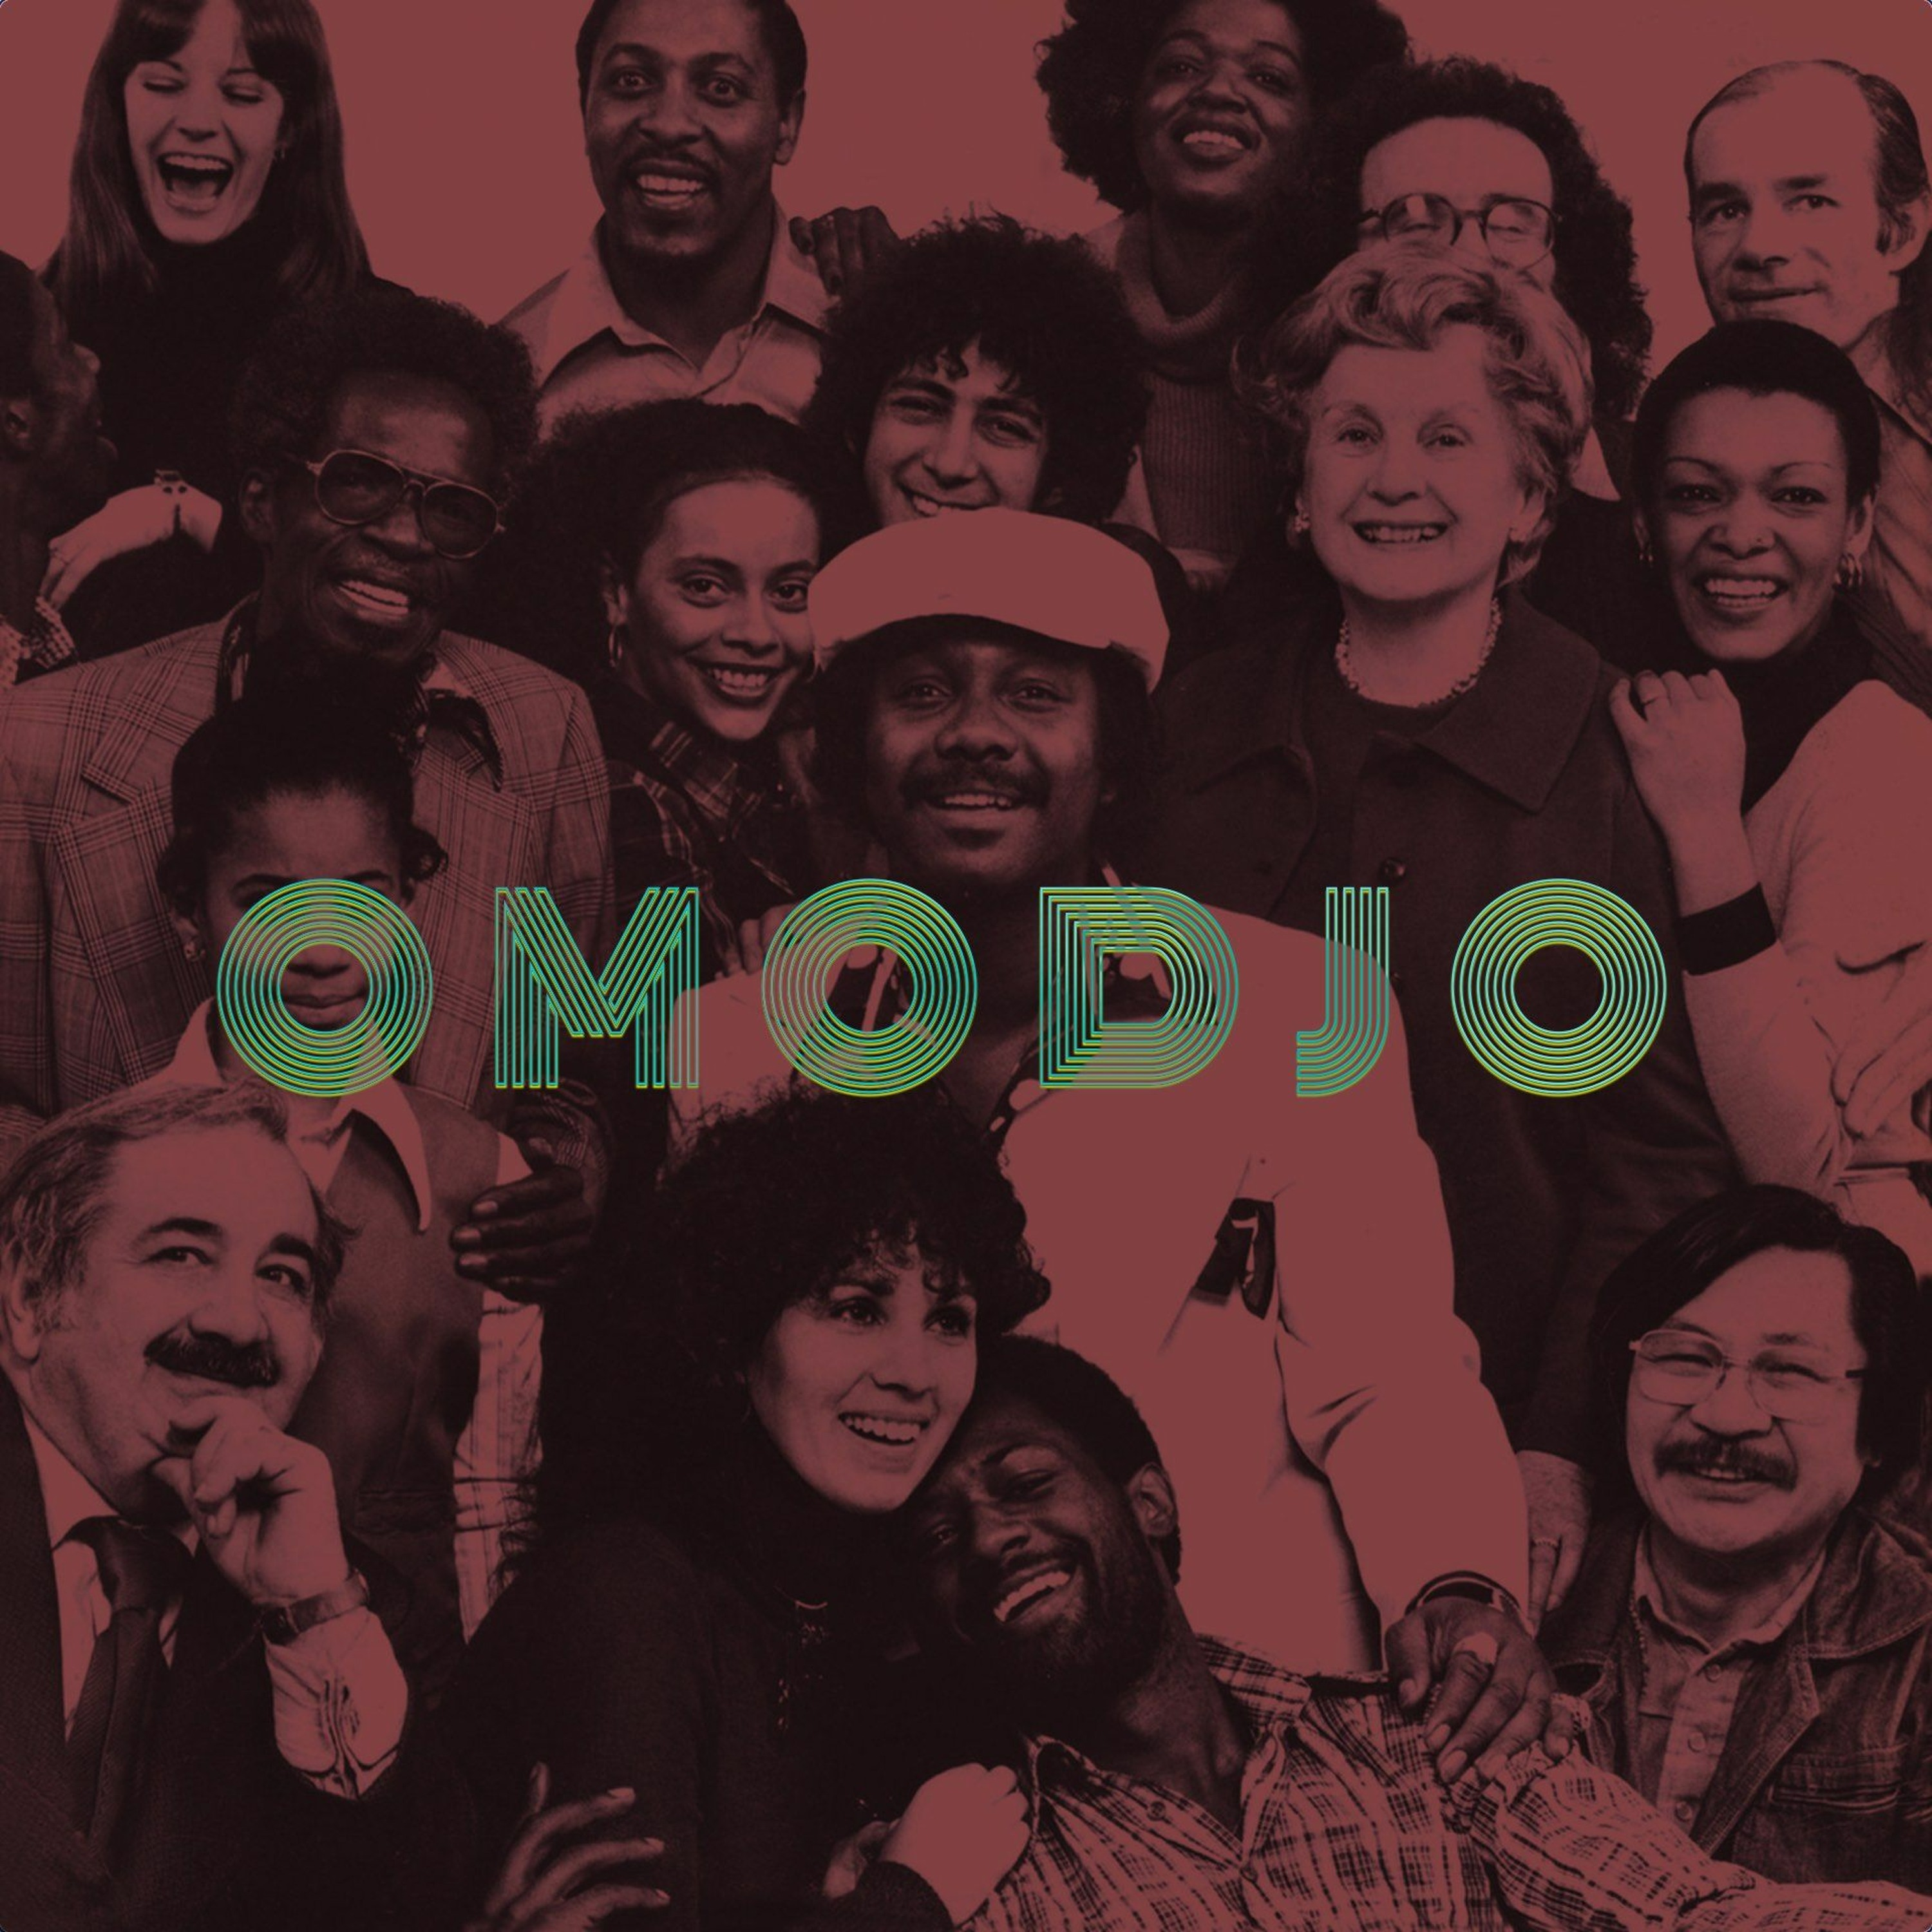 PLAYLIST - PLAY ! OMODJO Janvier 2020 - continuous mix